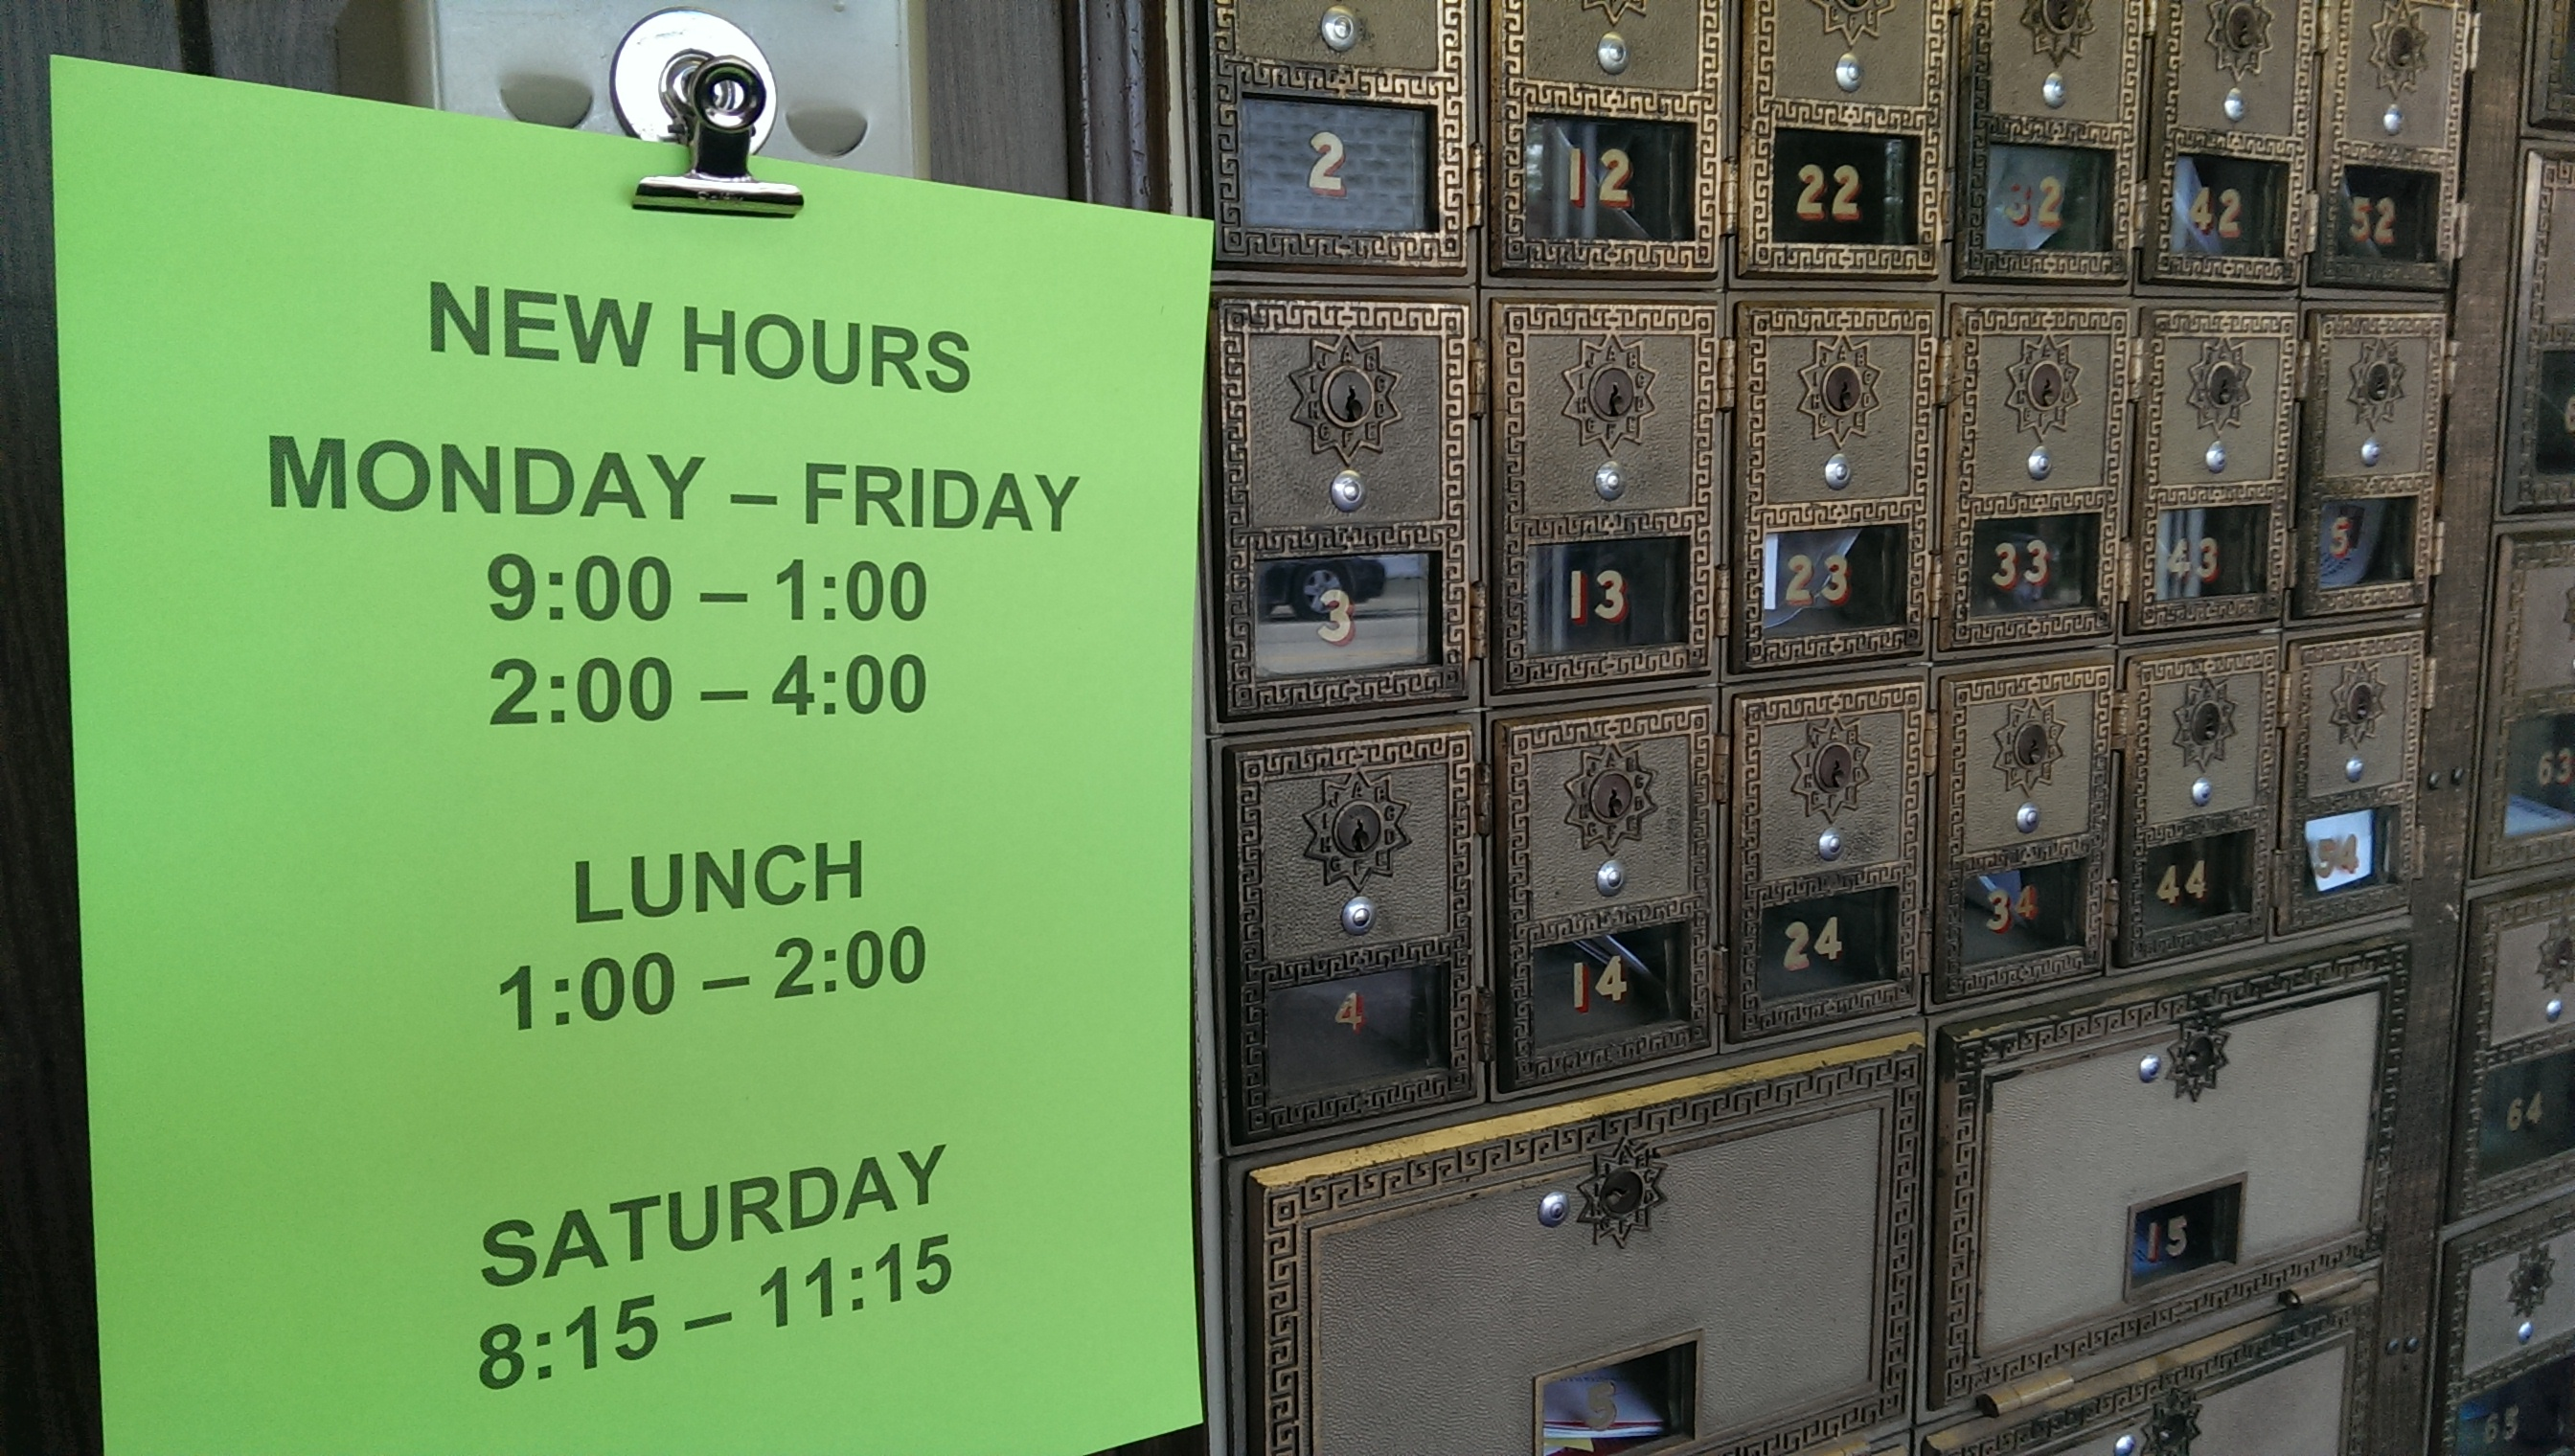 Post Office NEW HOURS